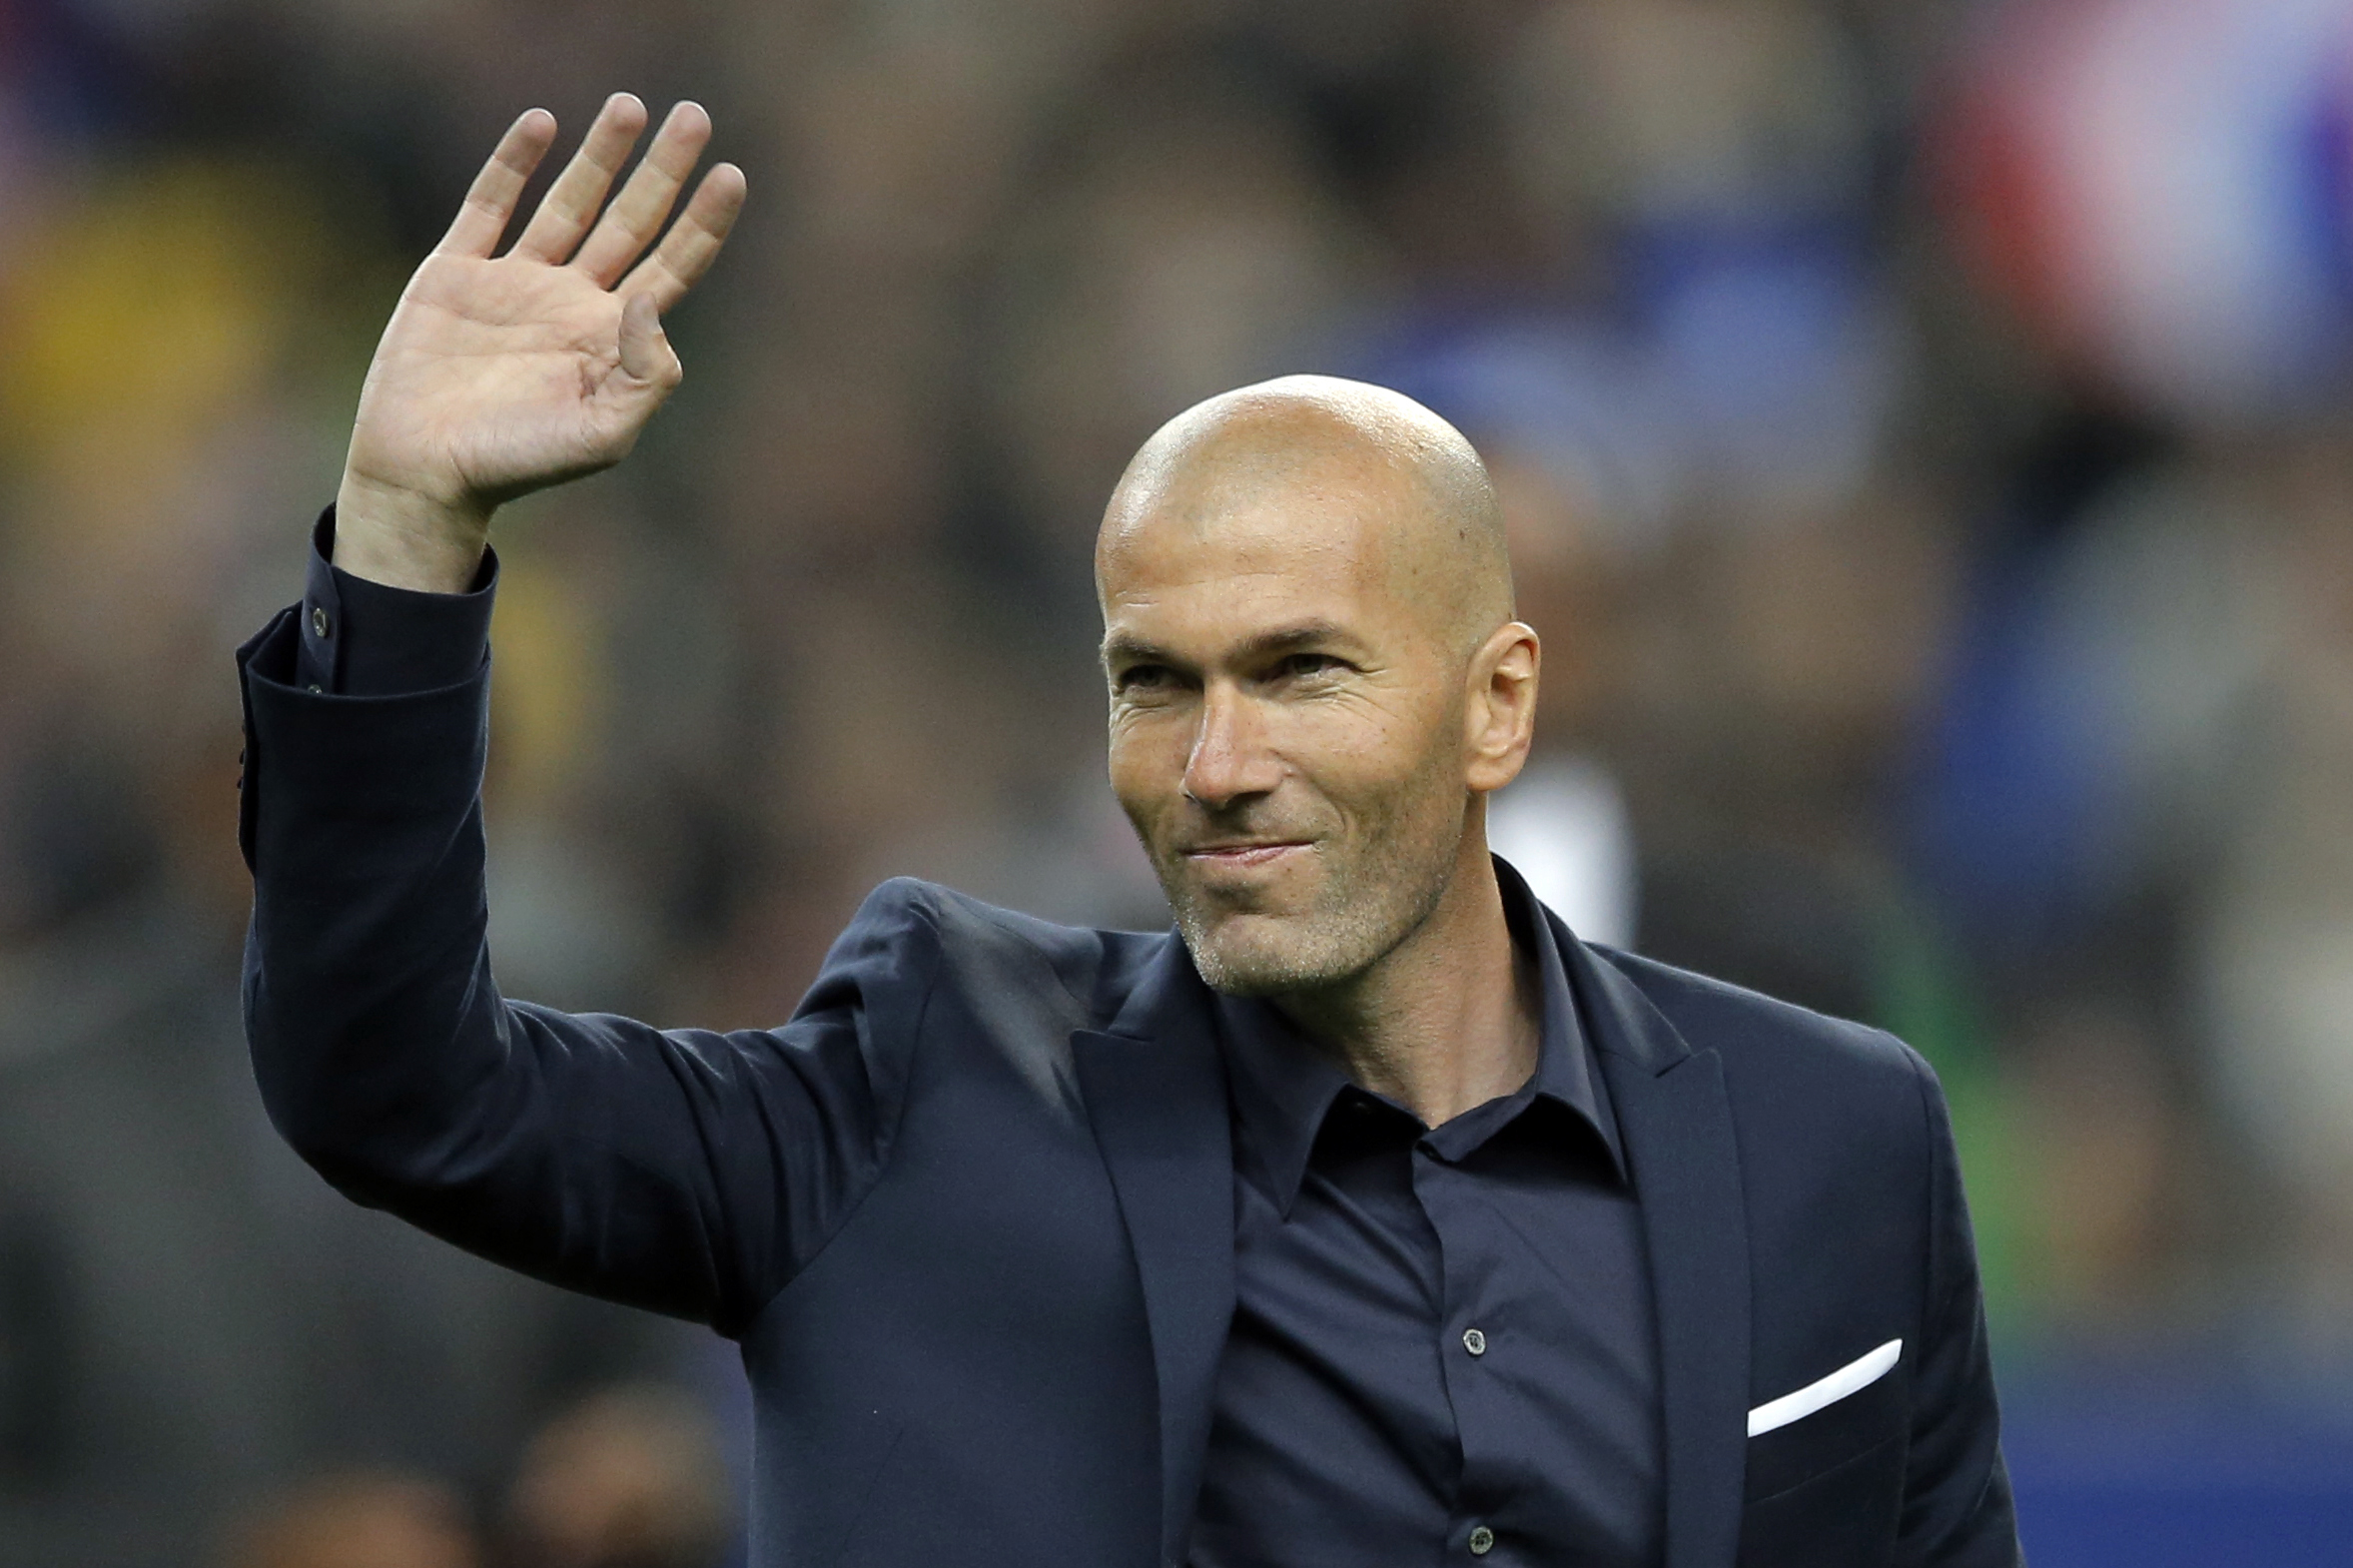 FILE - In this March 26, 2015 file photo, former soccer player and current Real Madrid B team coach Zinedine Zidane waves to spectators prior to the international friendly soccer match between France and Brazil at the Stade de France, north of Paris, France. Photo: AP